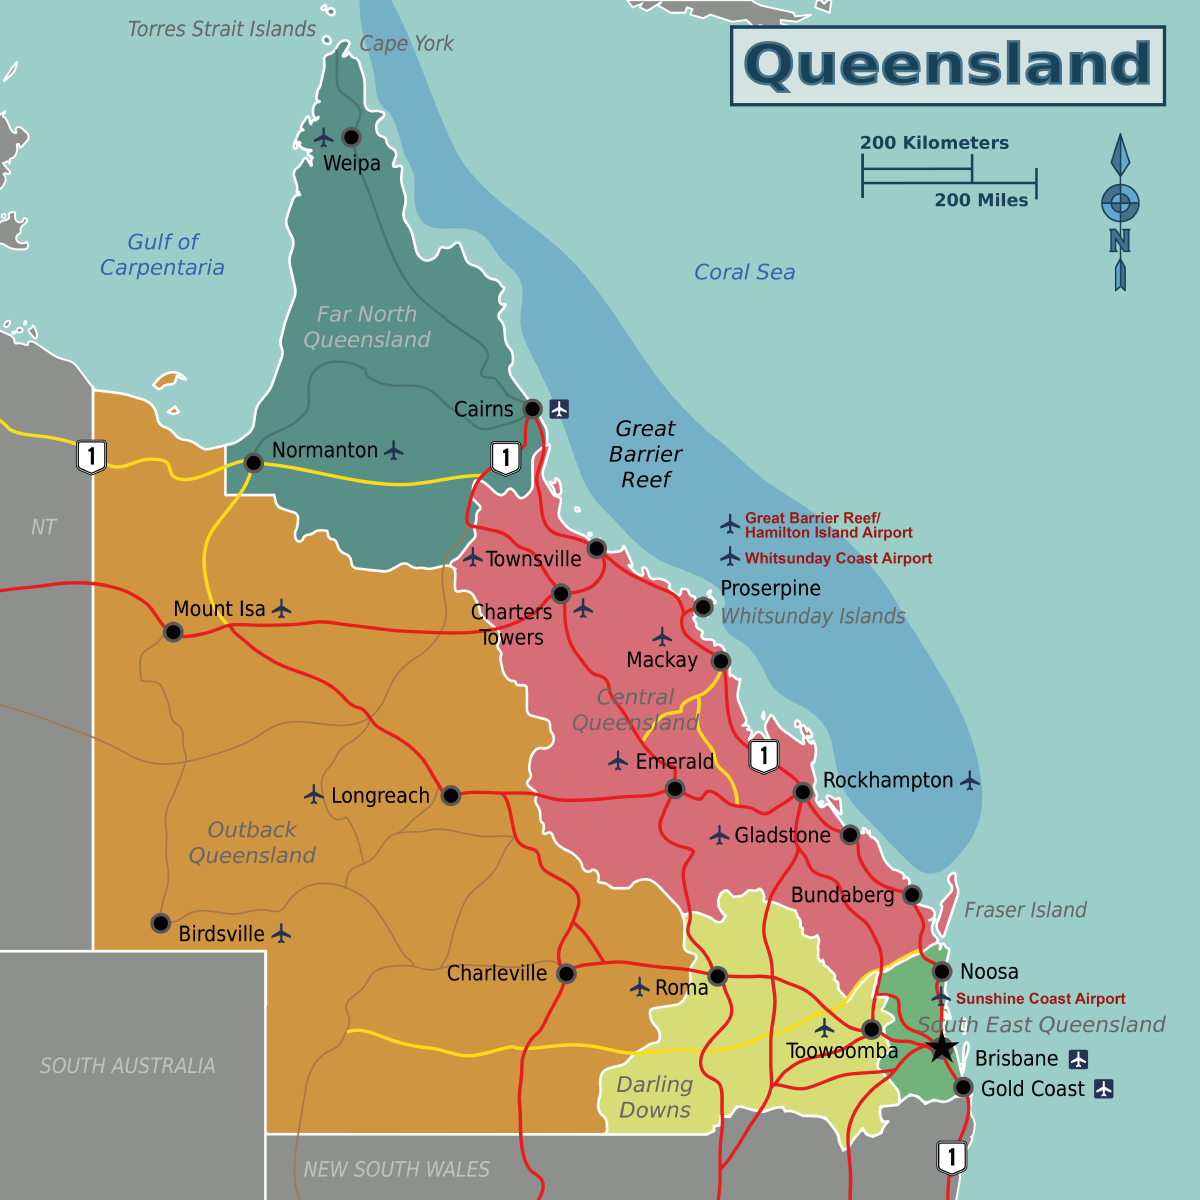 Queensland Travel Guide At Wikivoyage - Map of queensland australia with cities